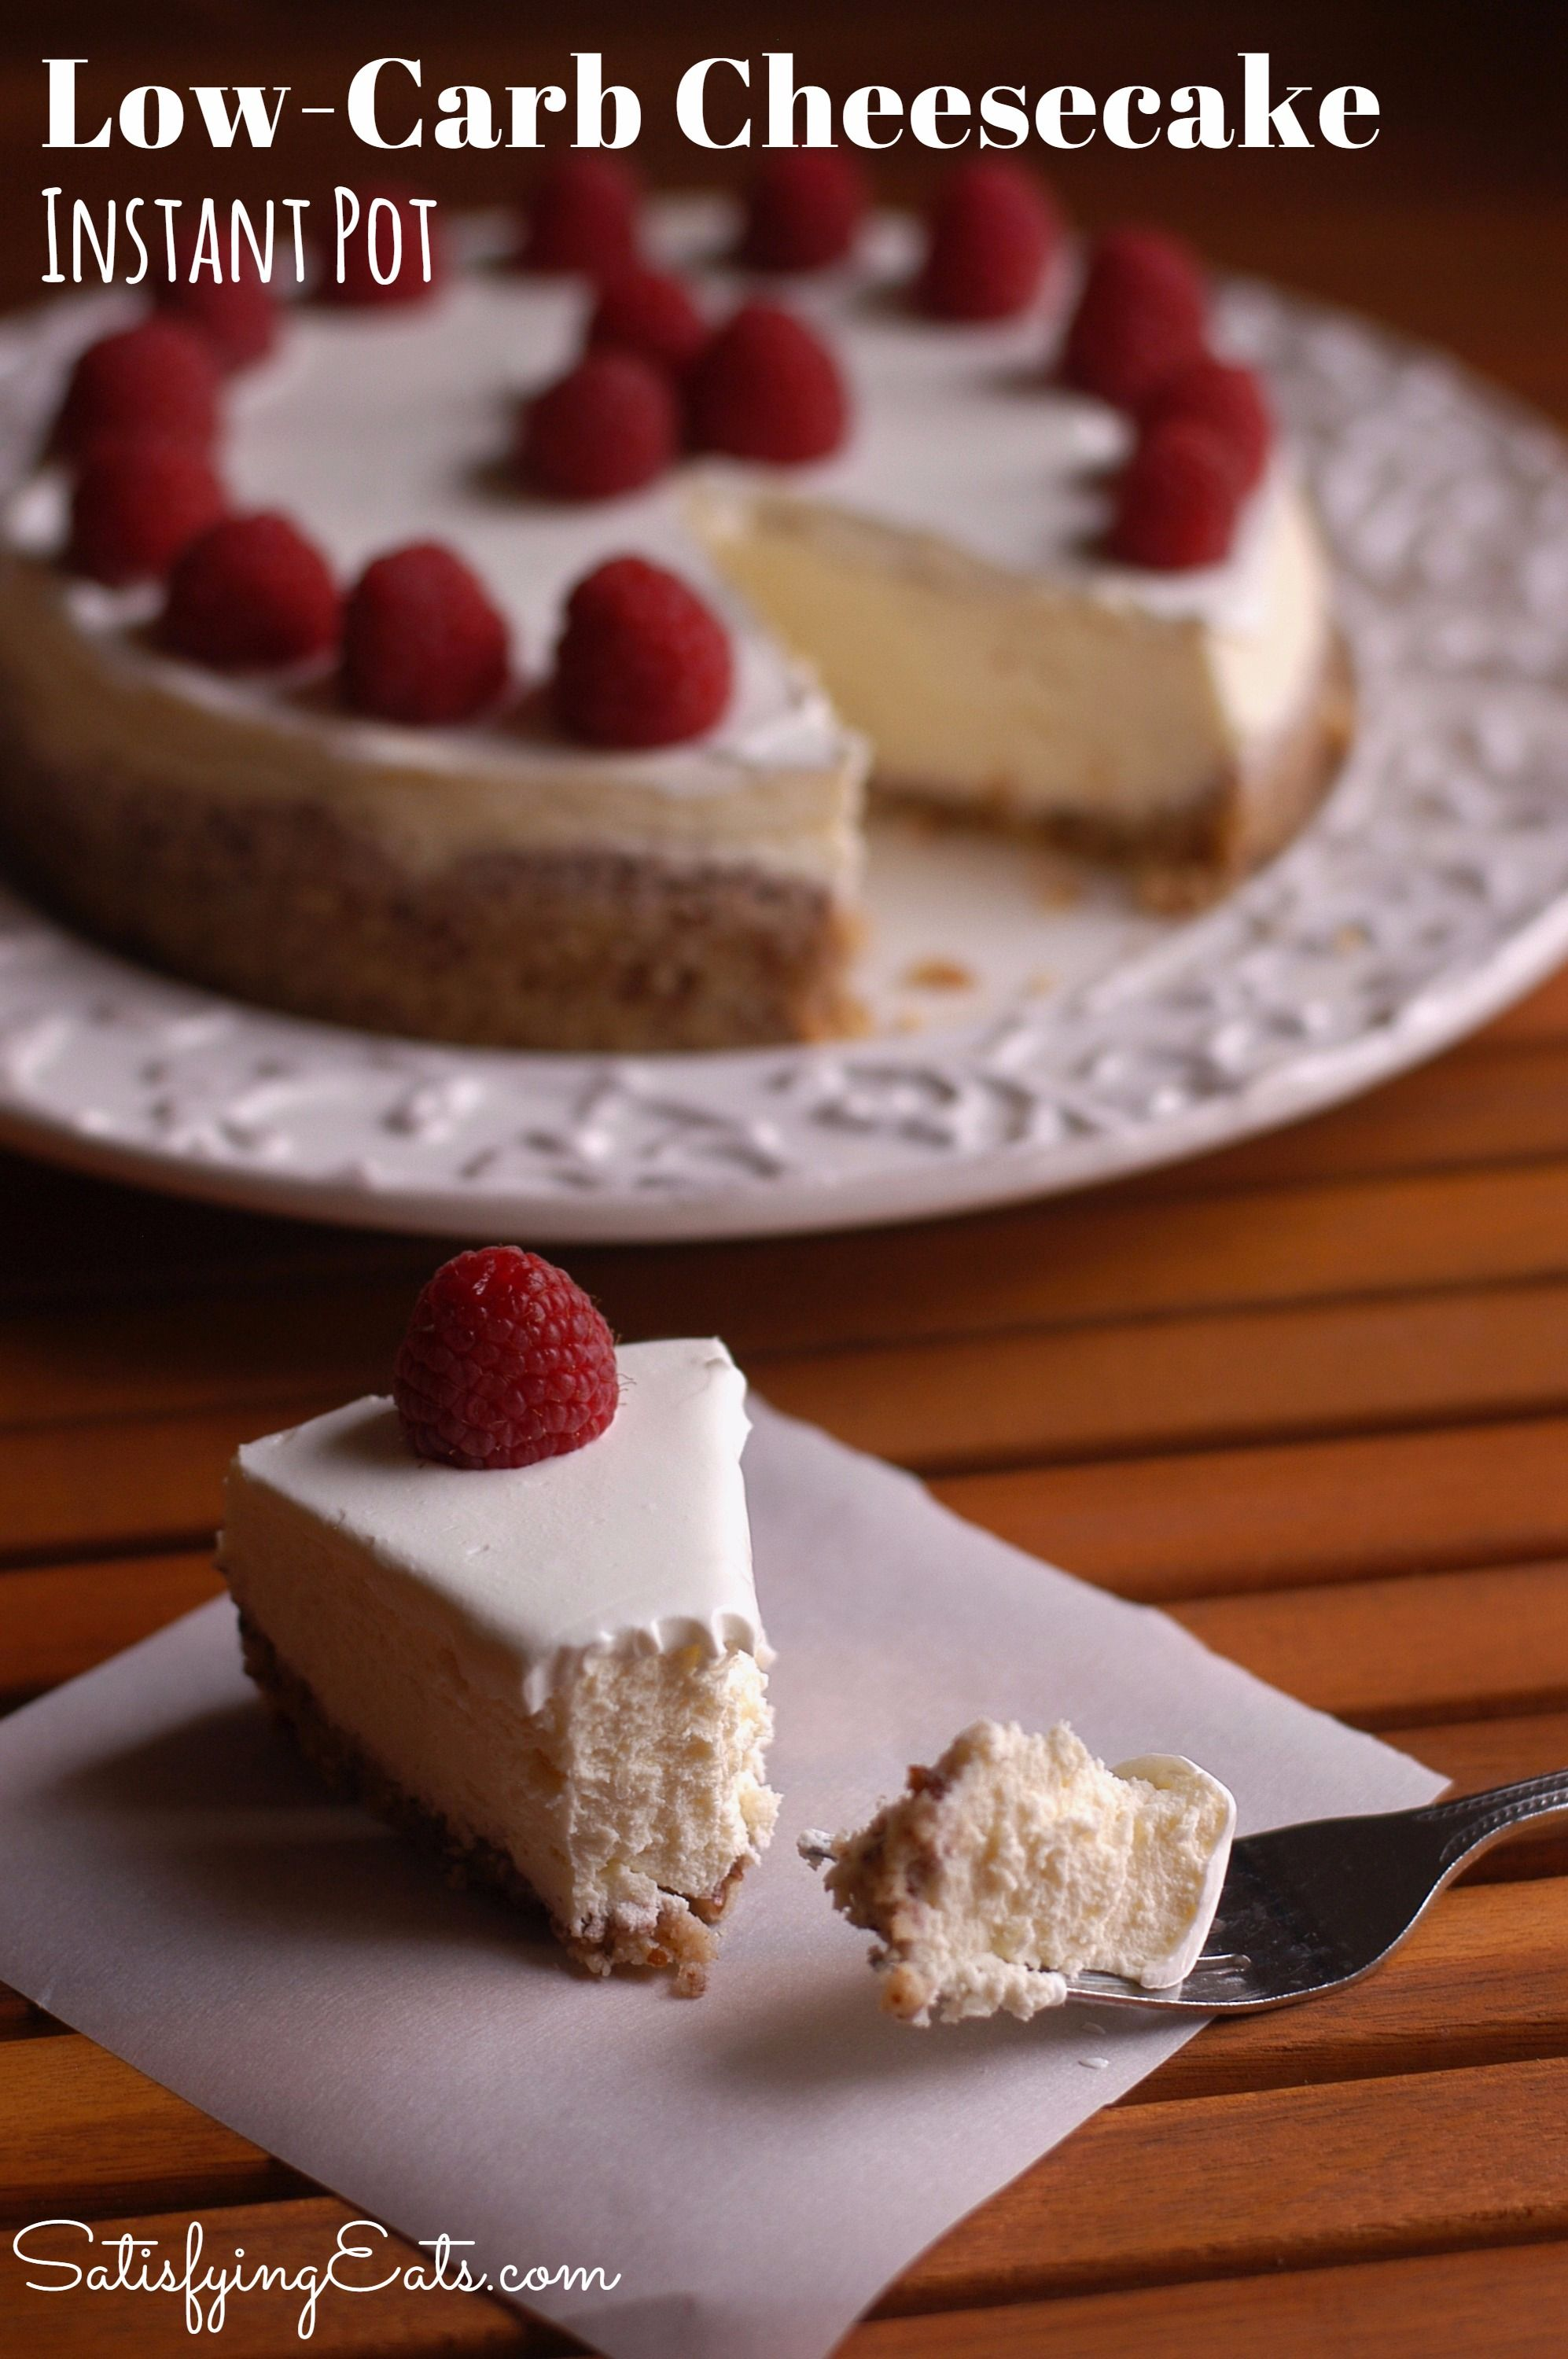 Instant Pot Low Carb Cheesecake With Nut Crust Low Carb Cheesecake Healthy Cheesecake Low Carb Cheesecake Recipe